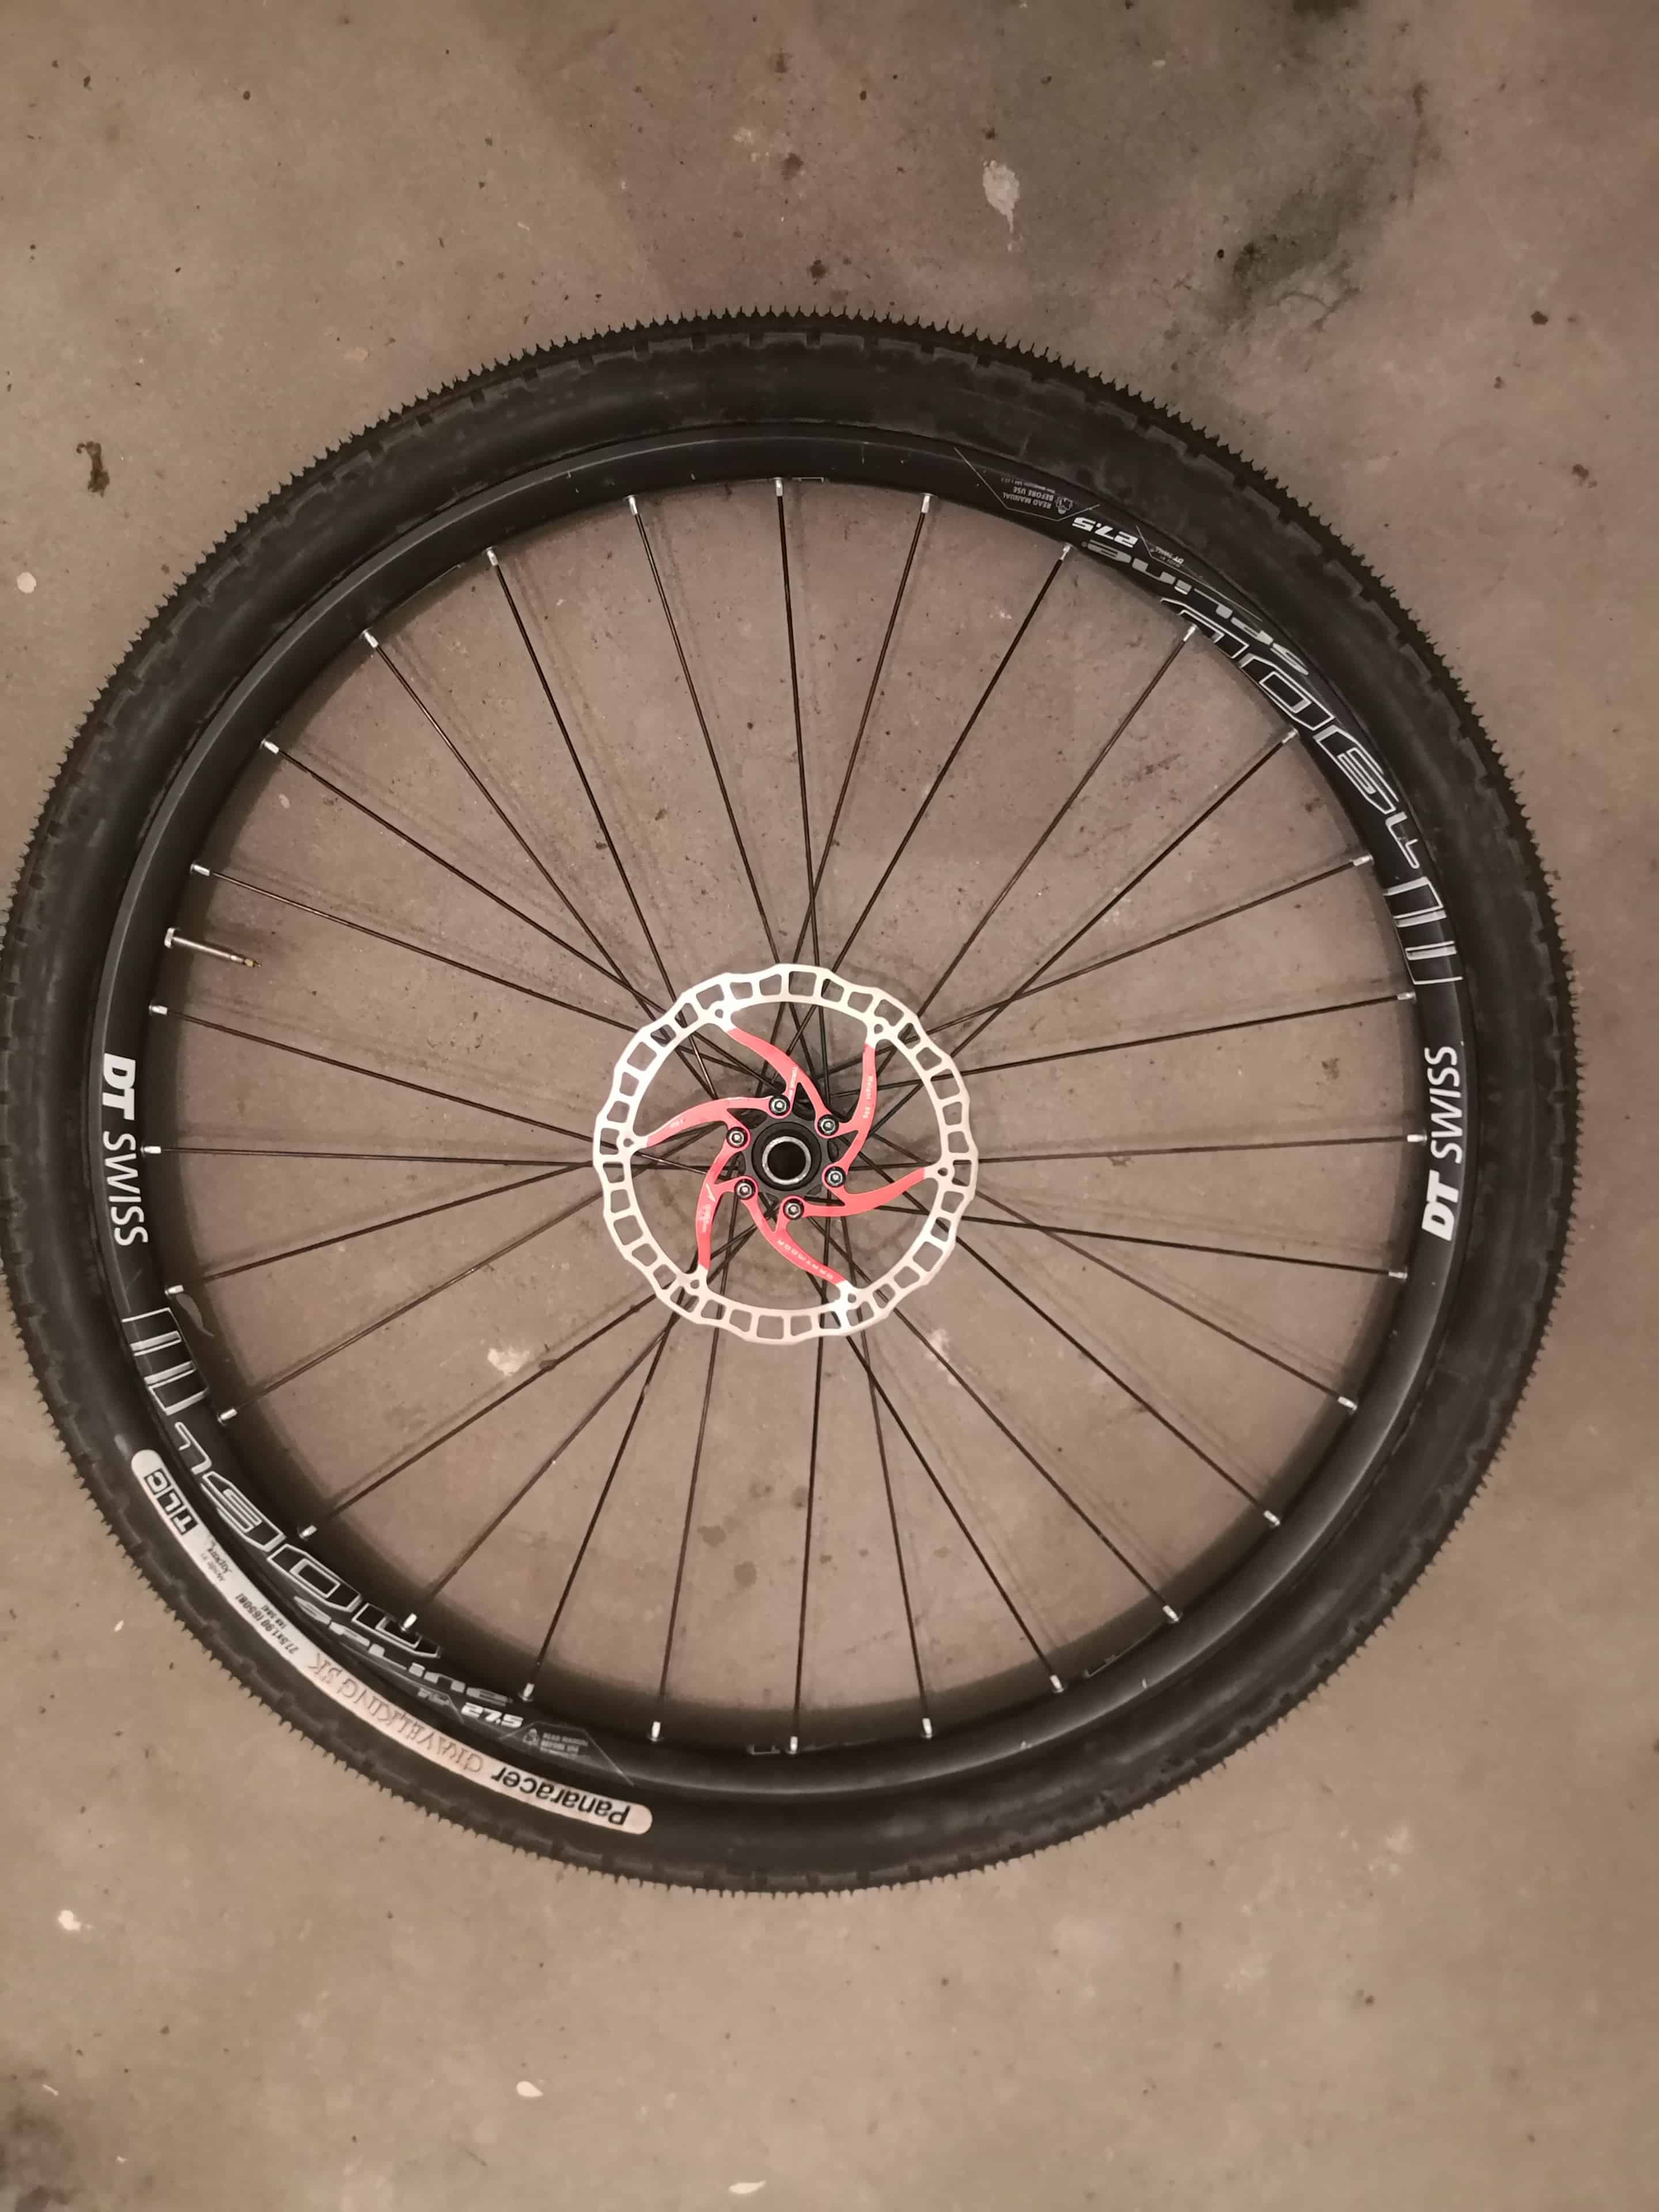 650b wheels and tires